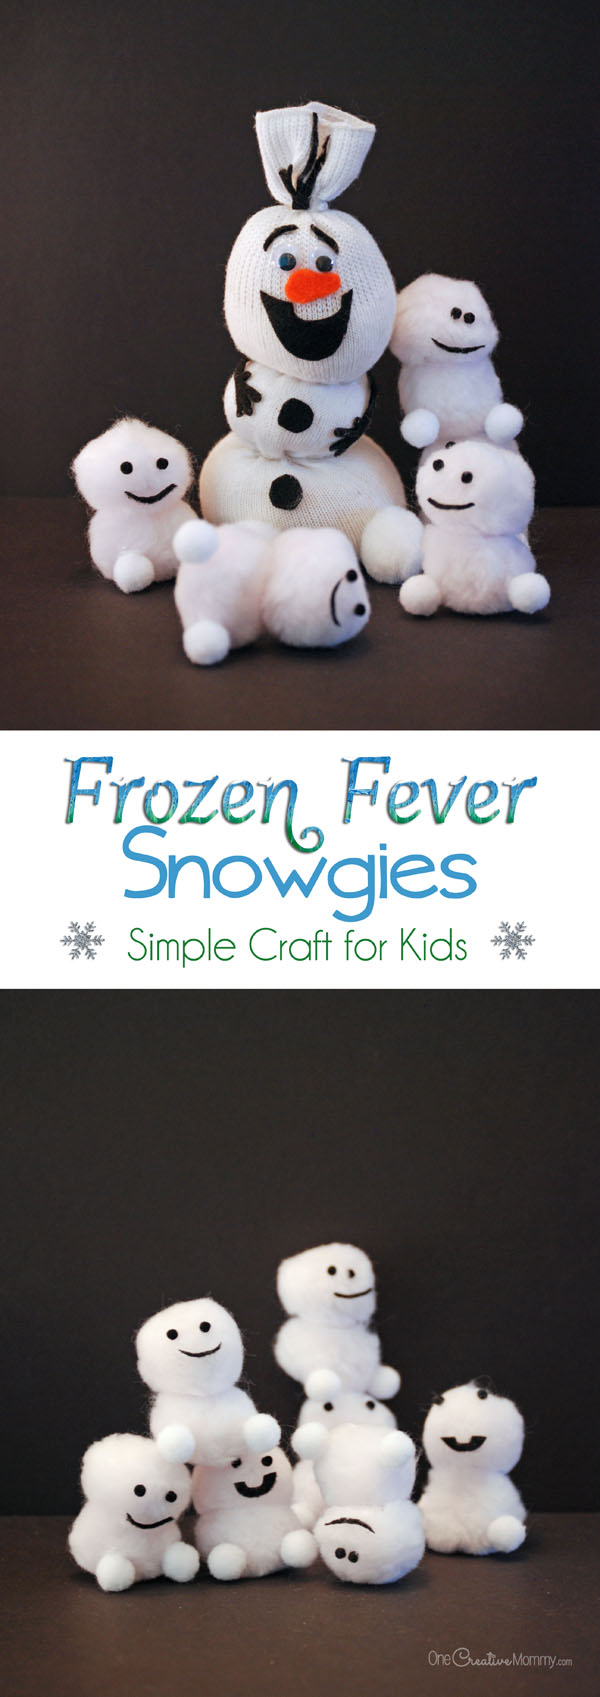 Quick and Easy Snowgies Craft for Kids inspired by Frozen Fever! Tutorial on OneCreativeMommy.com